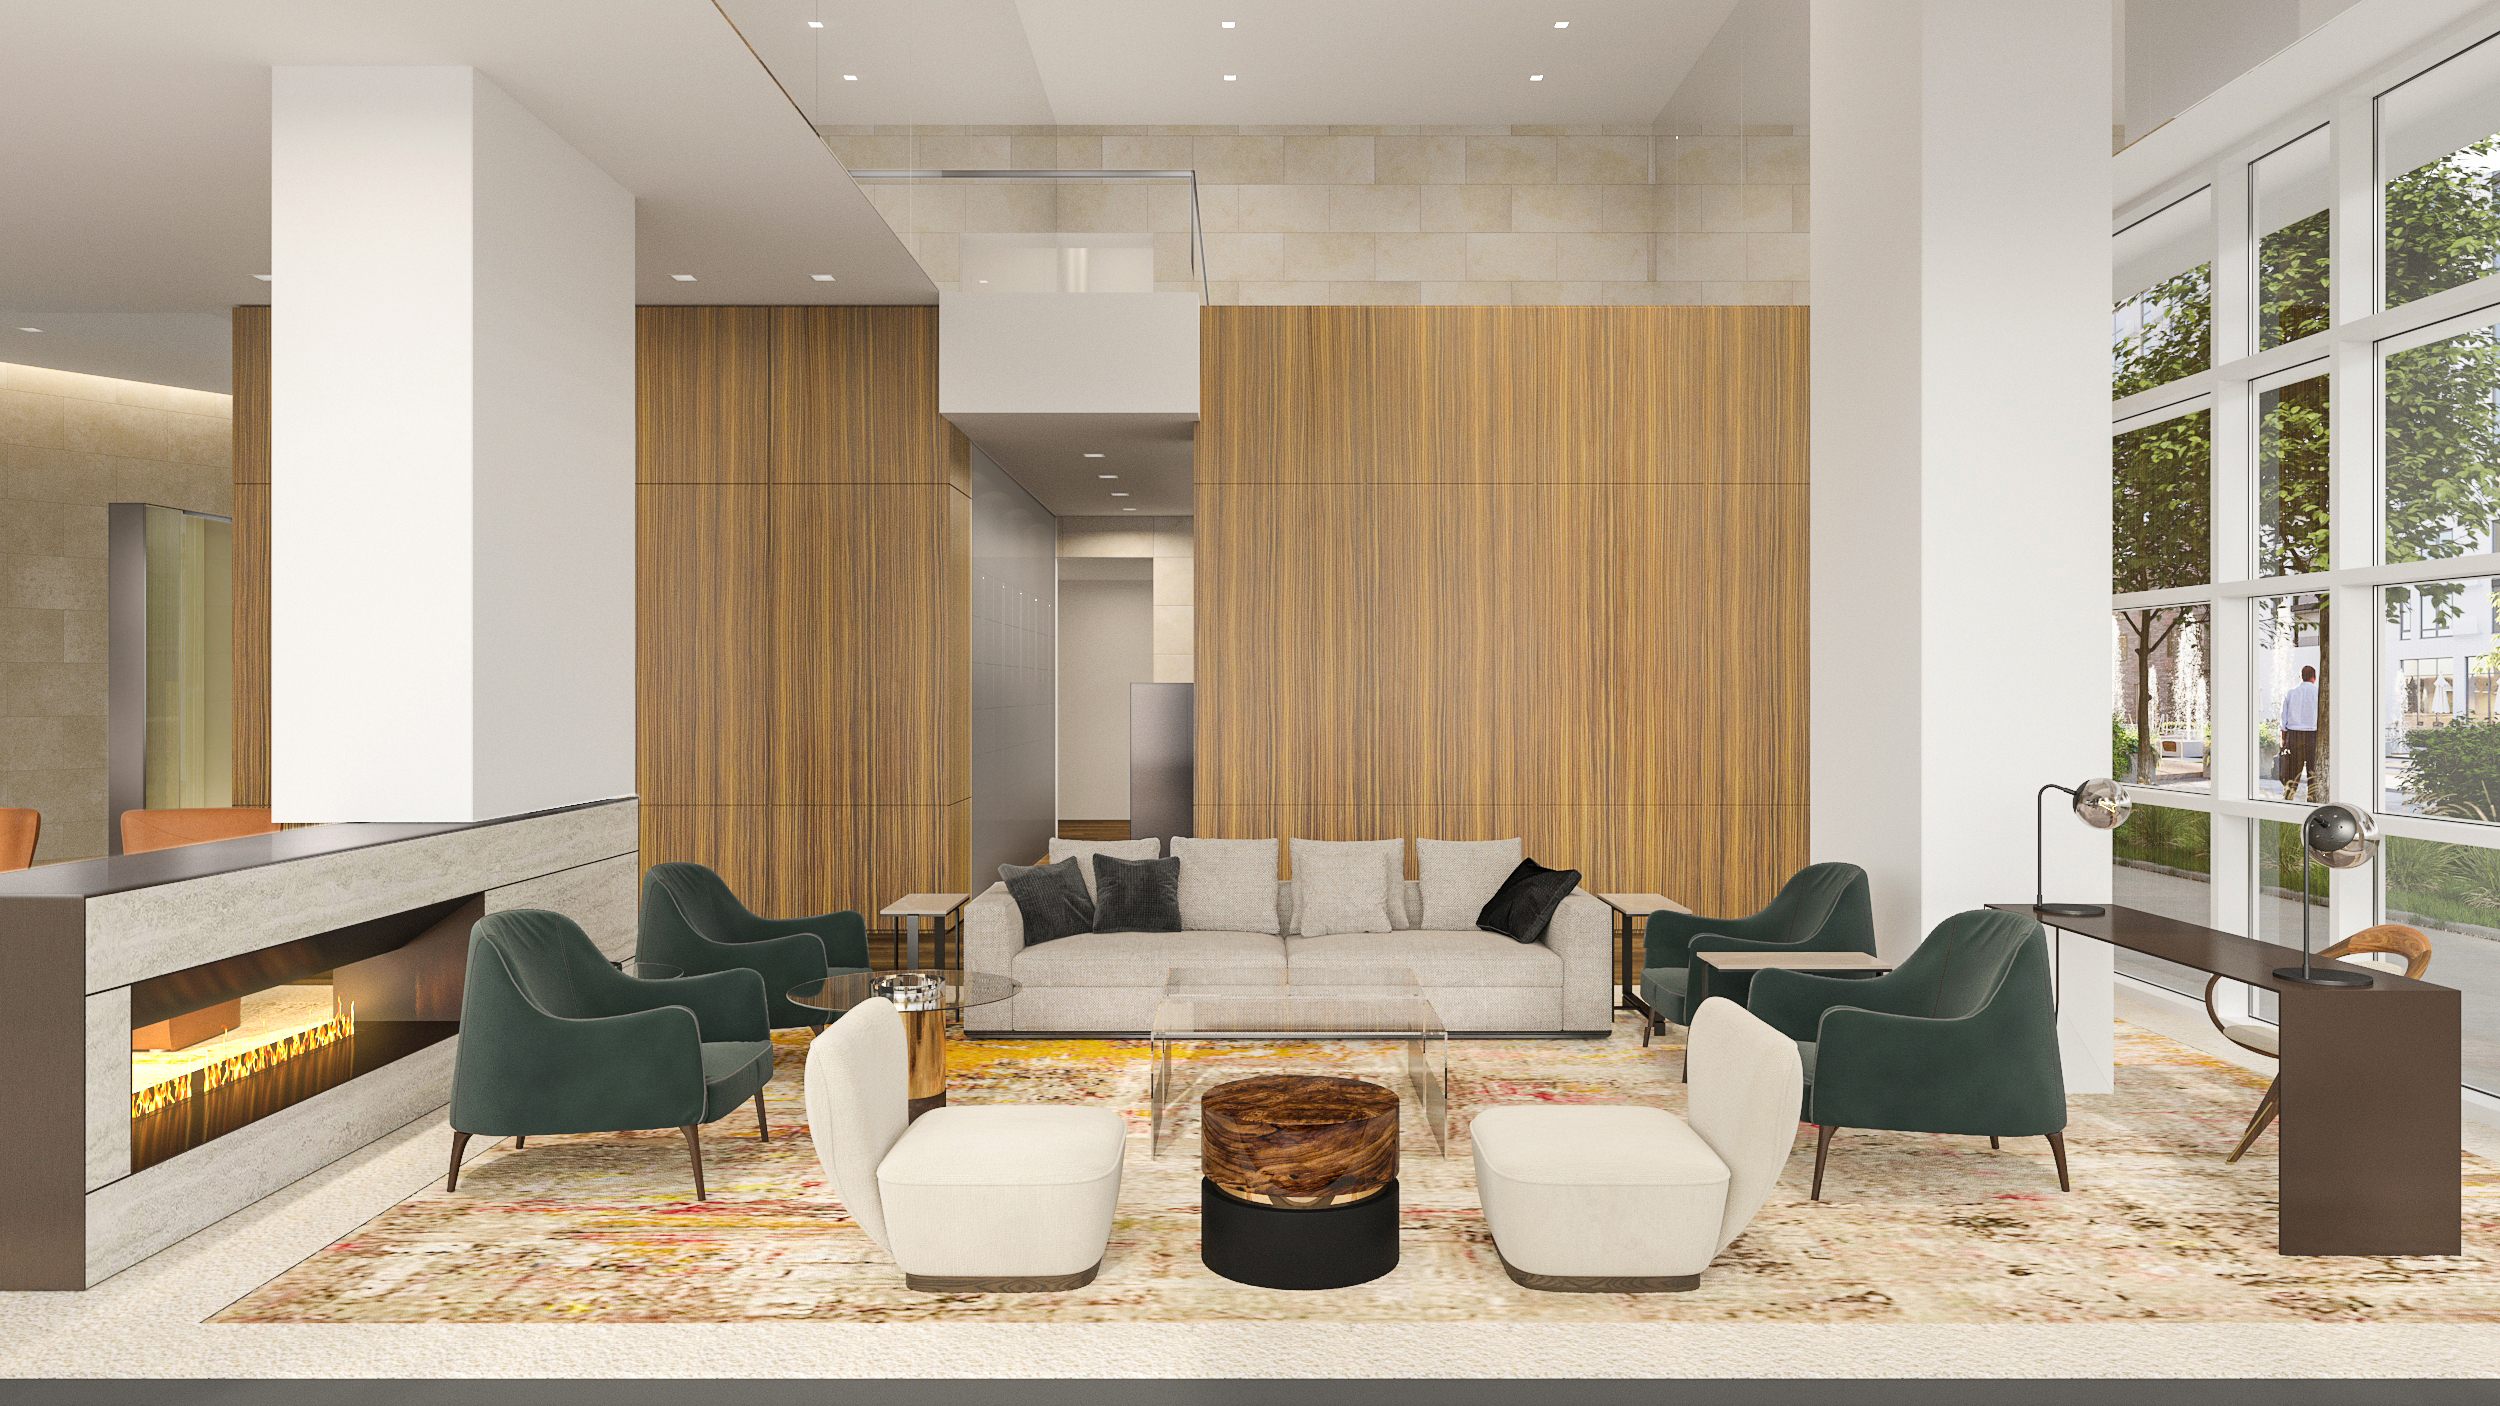 La Colombe d'Or Hotel & Residences Lobby level Fireplace and Seating Area; Rendering Courtesy of Rottet Studio